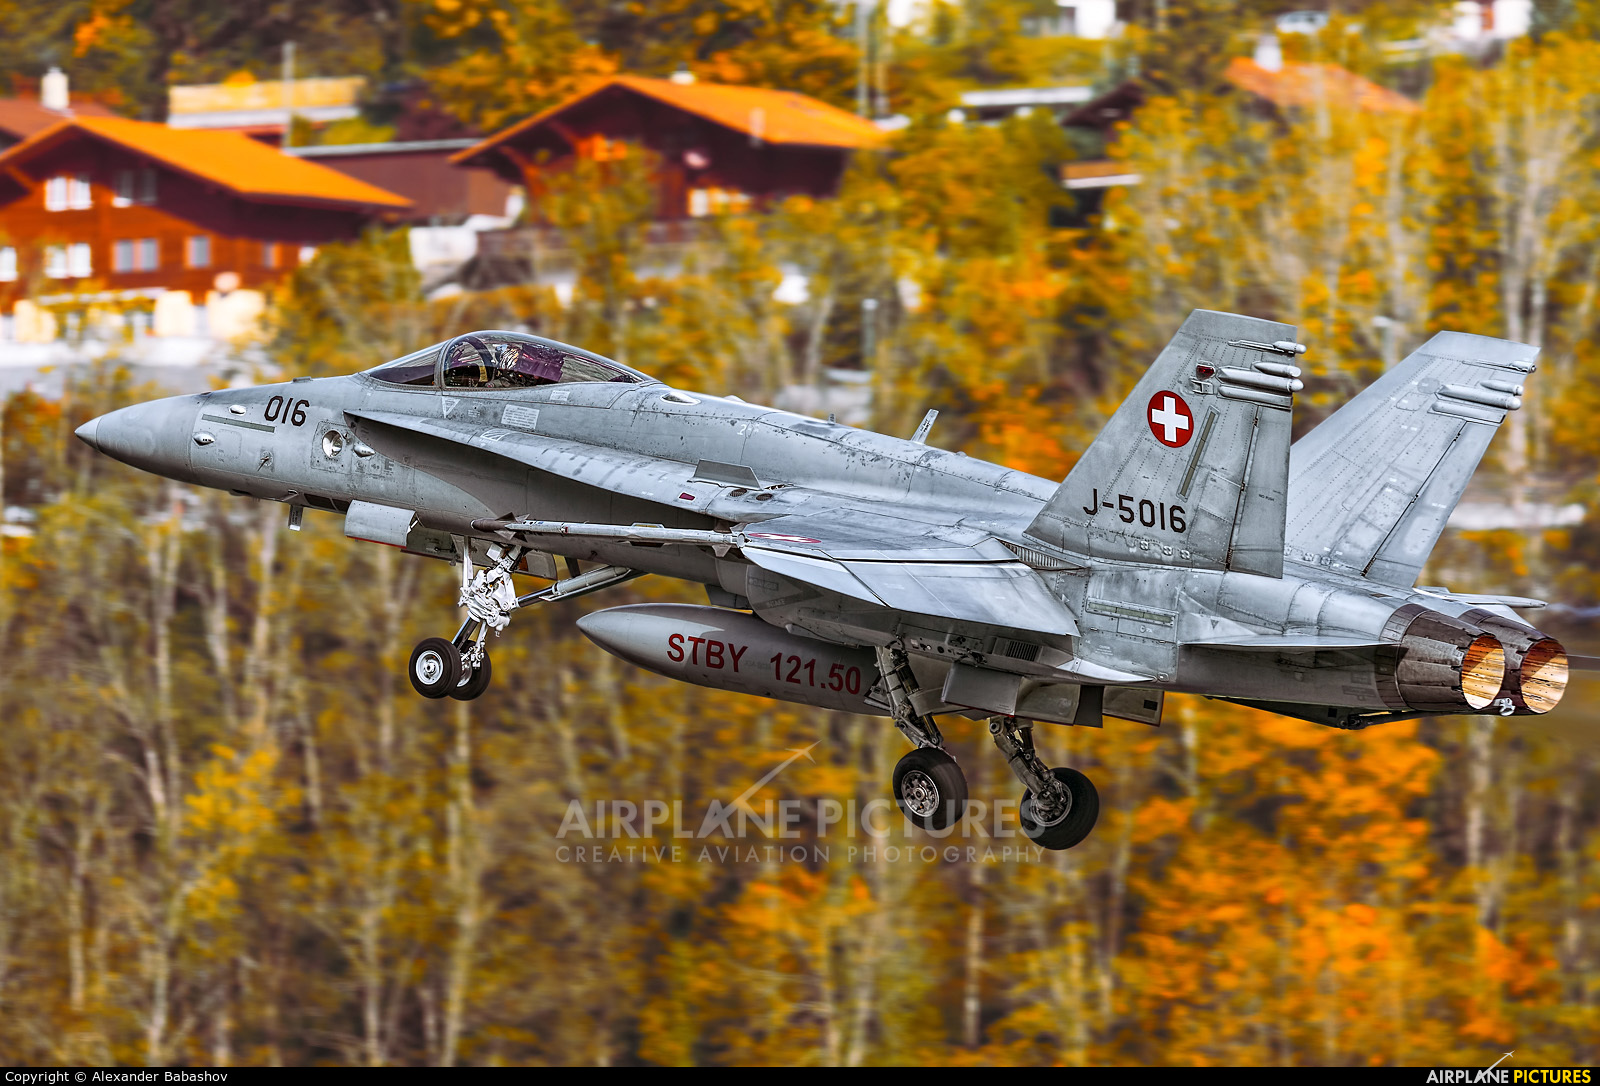 Switzerland - Air Force McDonnell Douglas F/A-18C Hornet J-5016